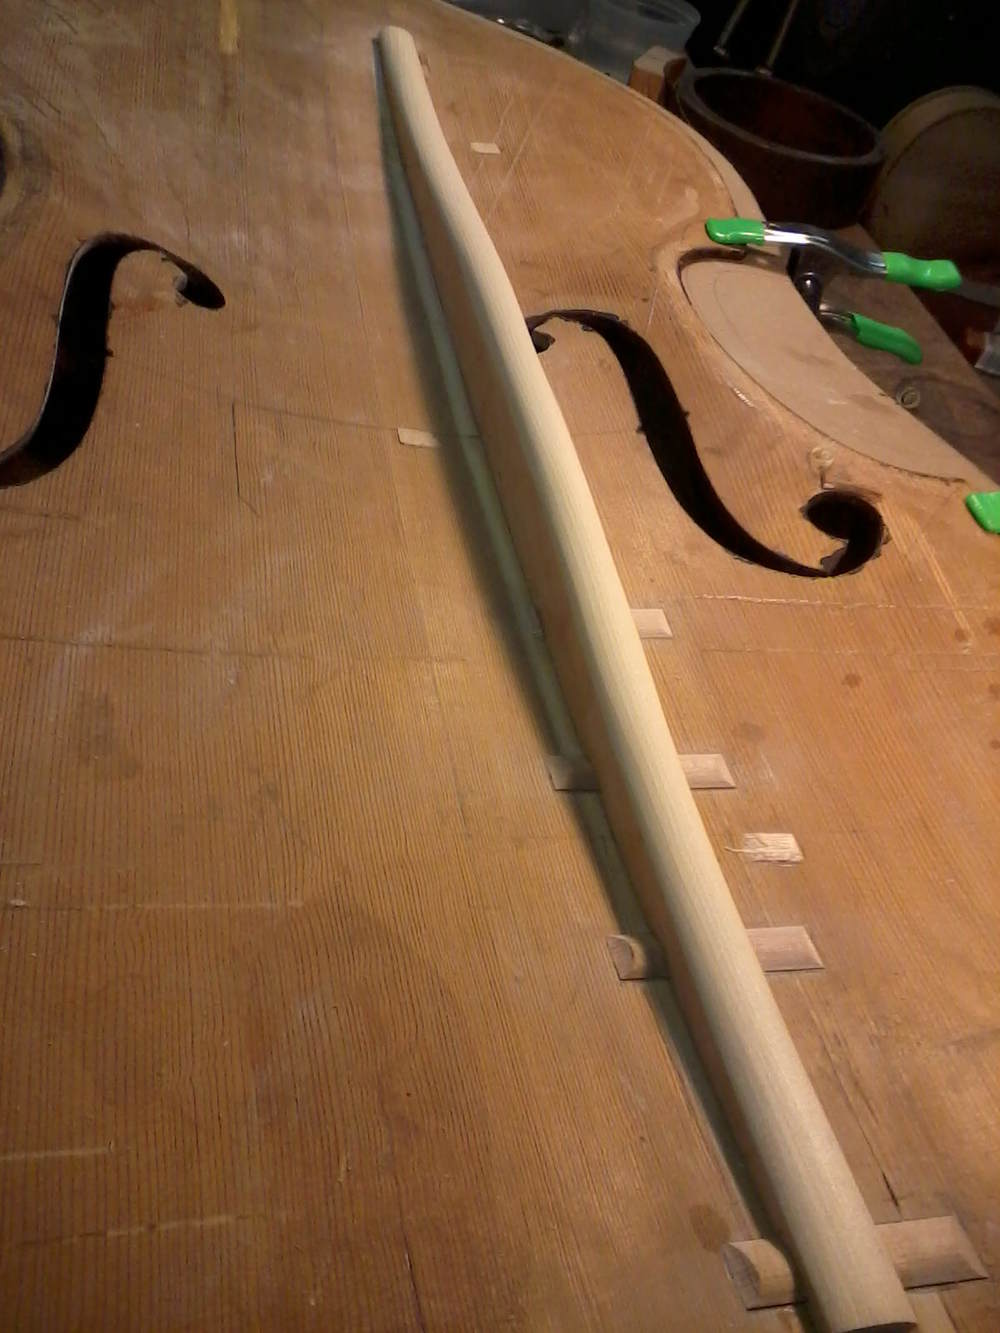 Double Bass repair done in 2012